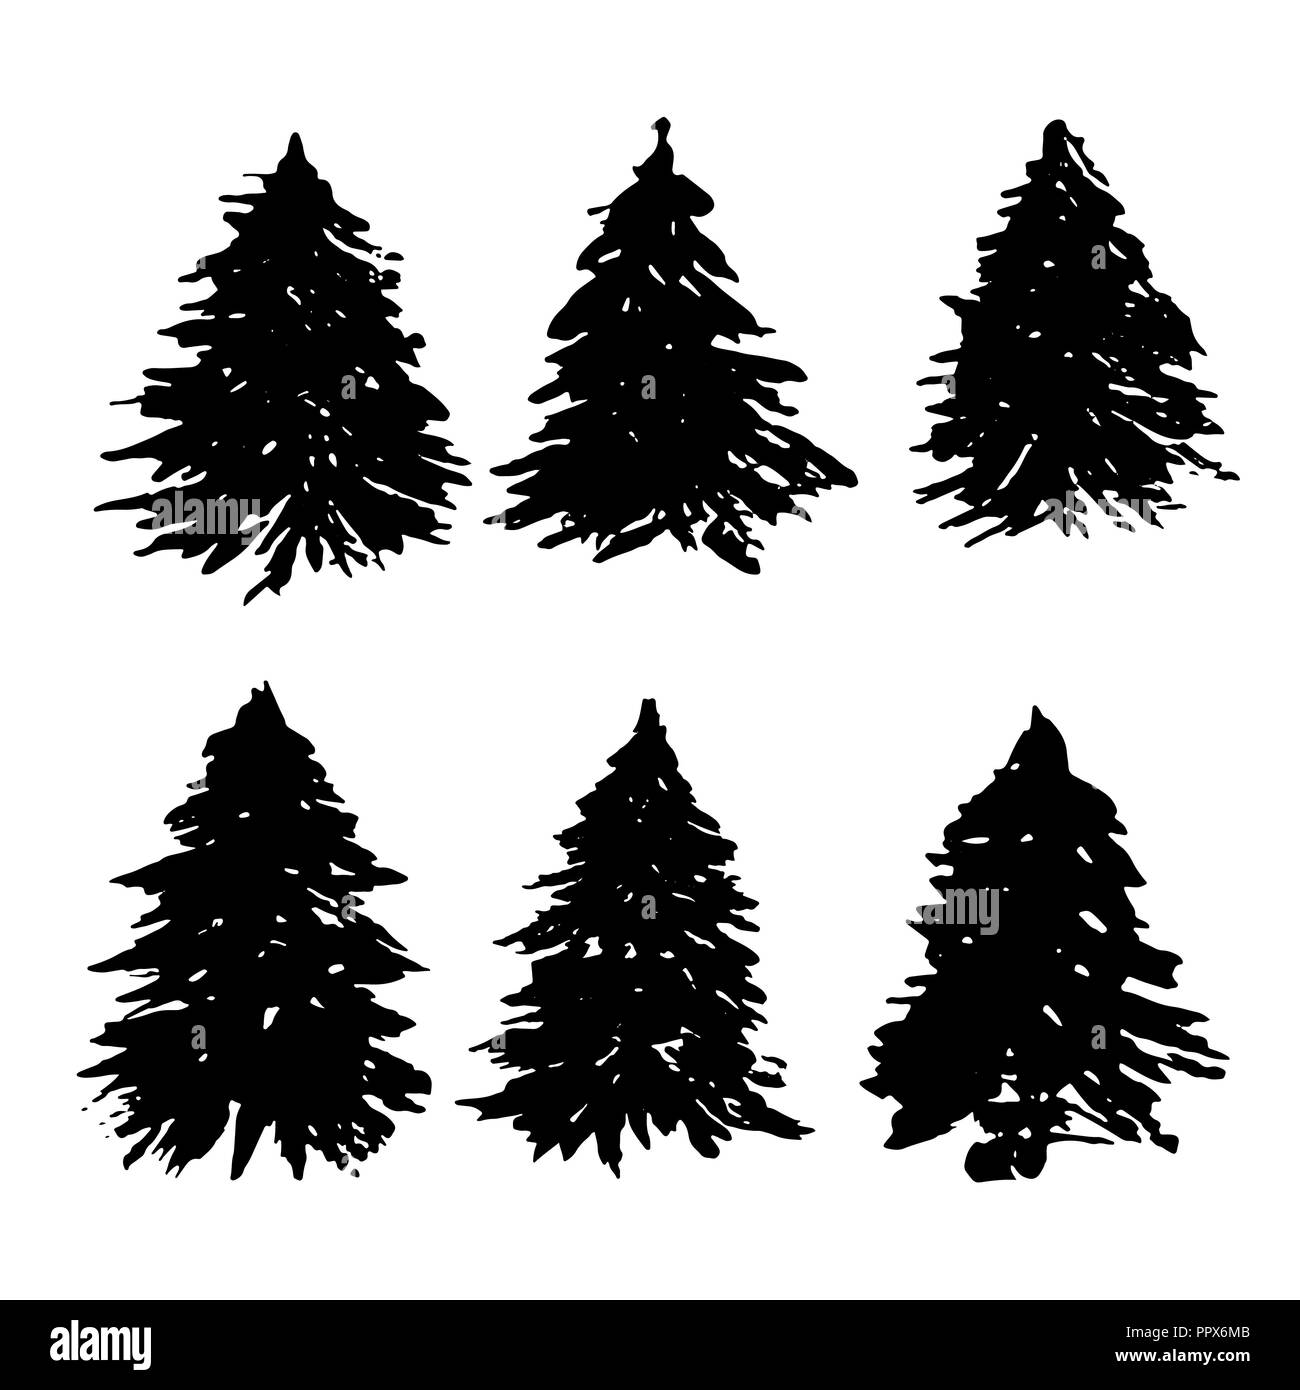 Set of fir tree silhouettes. Black grunge Christmas tree collection. Watercolor spruces isolated on white background. Vector illustration. - Stock Vector